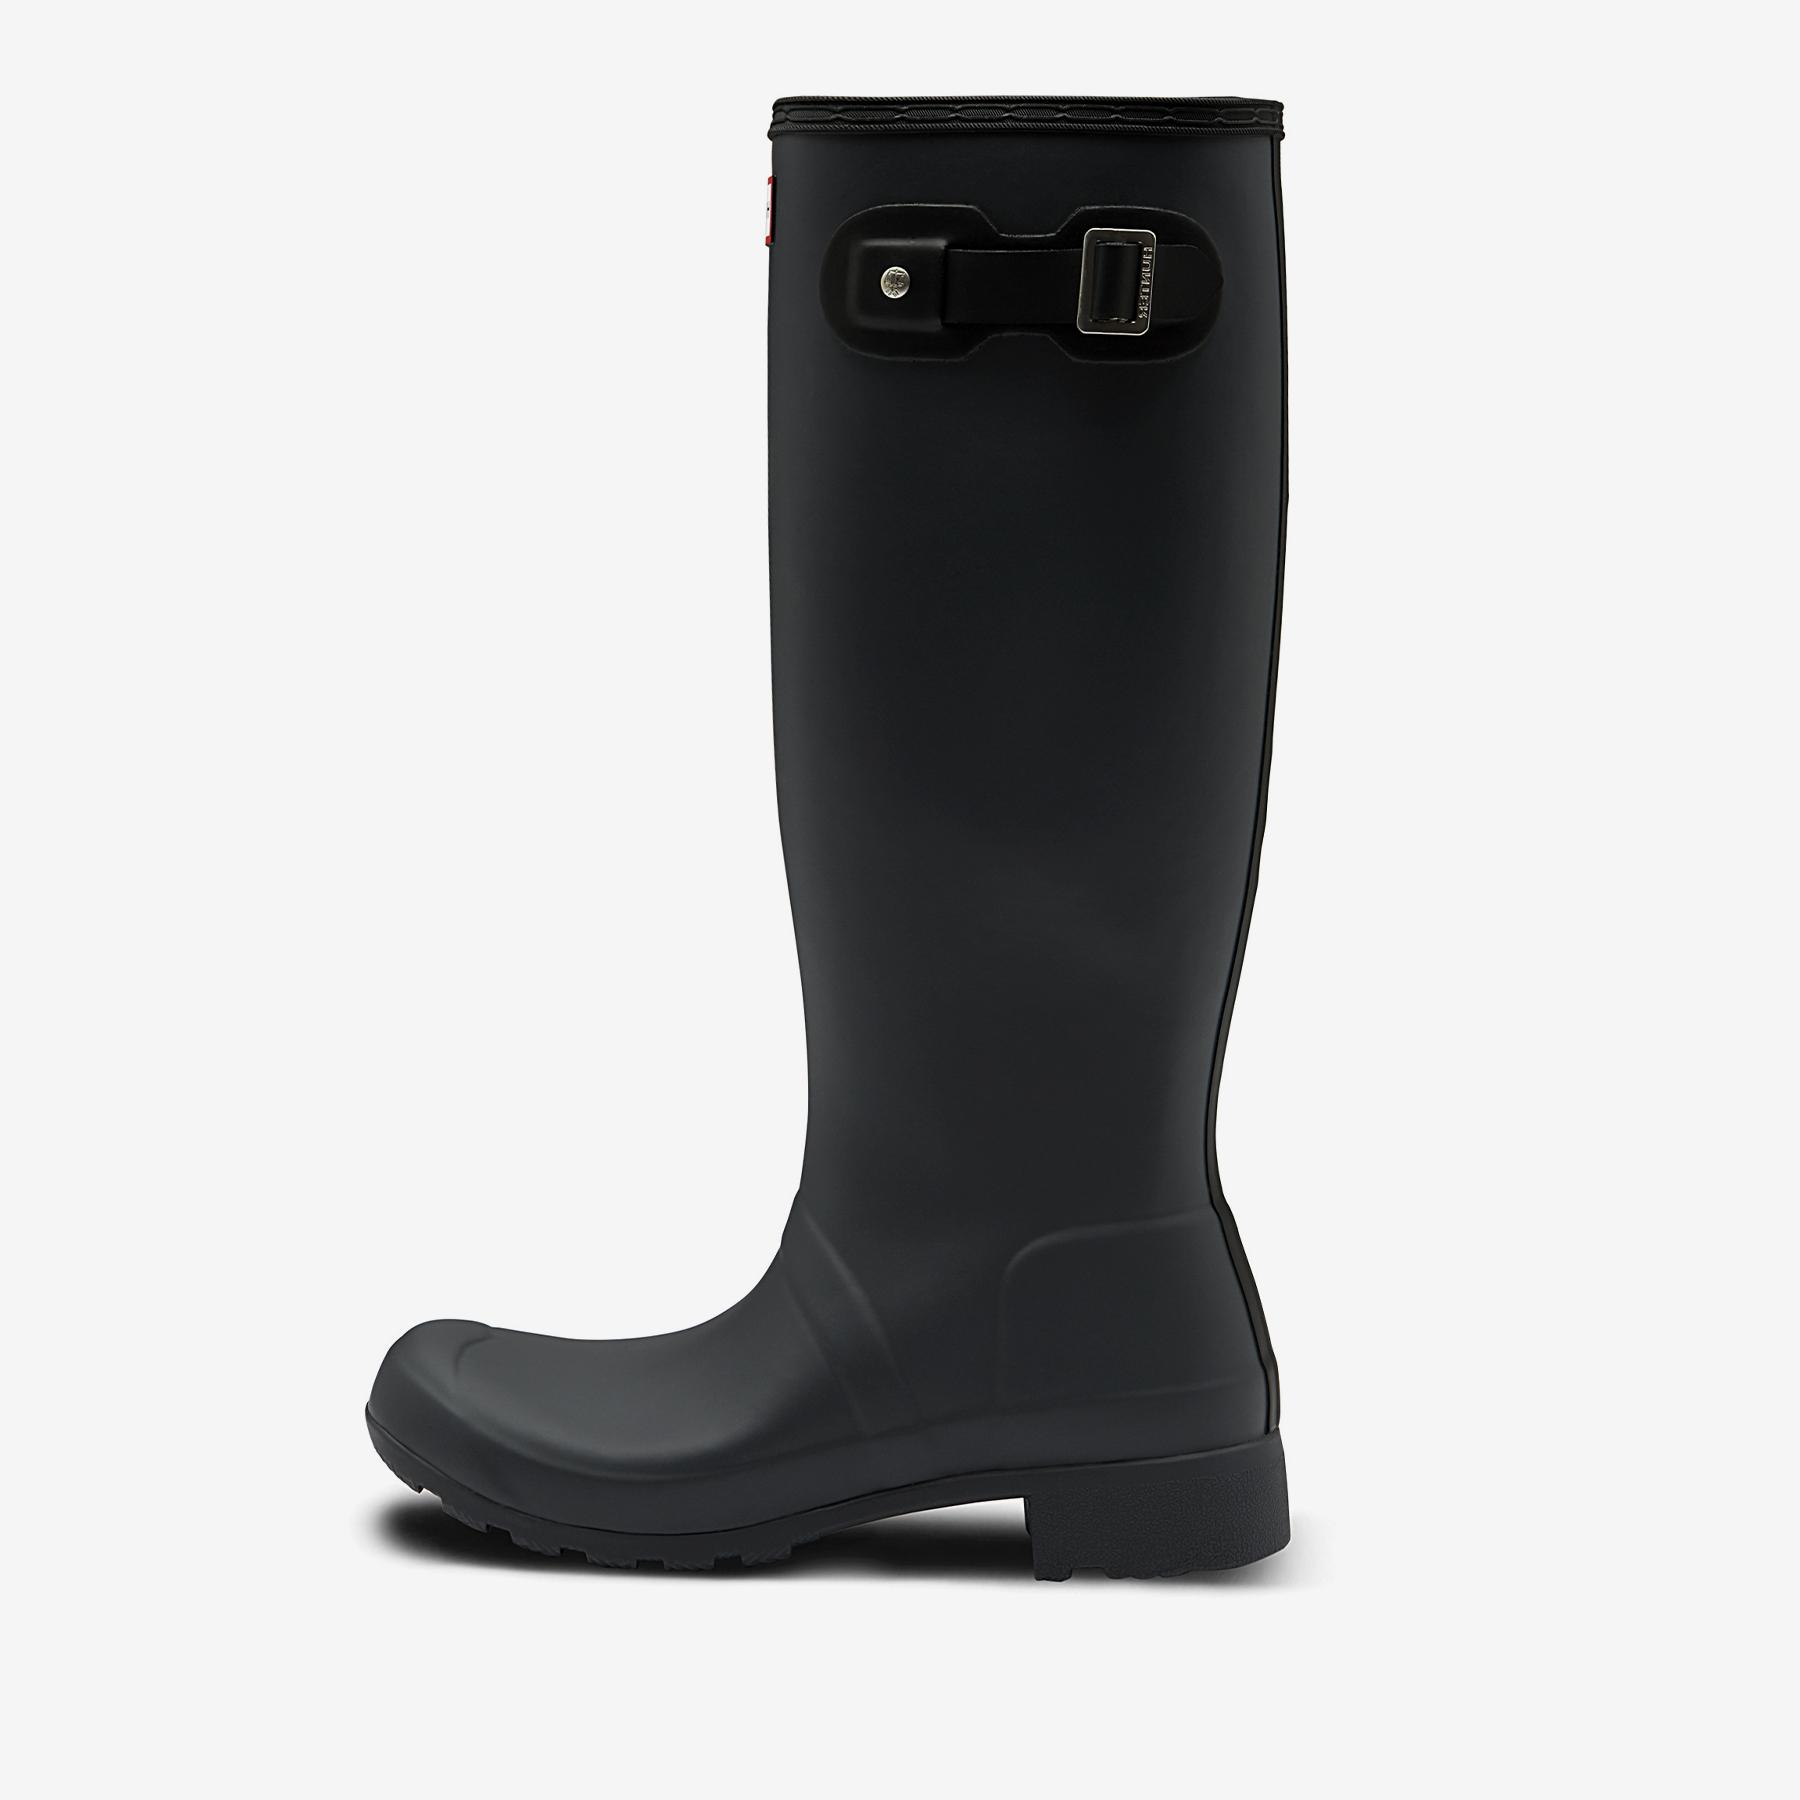 Women's Original Tour Foldable Tall Rain Boots